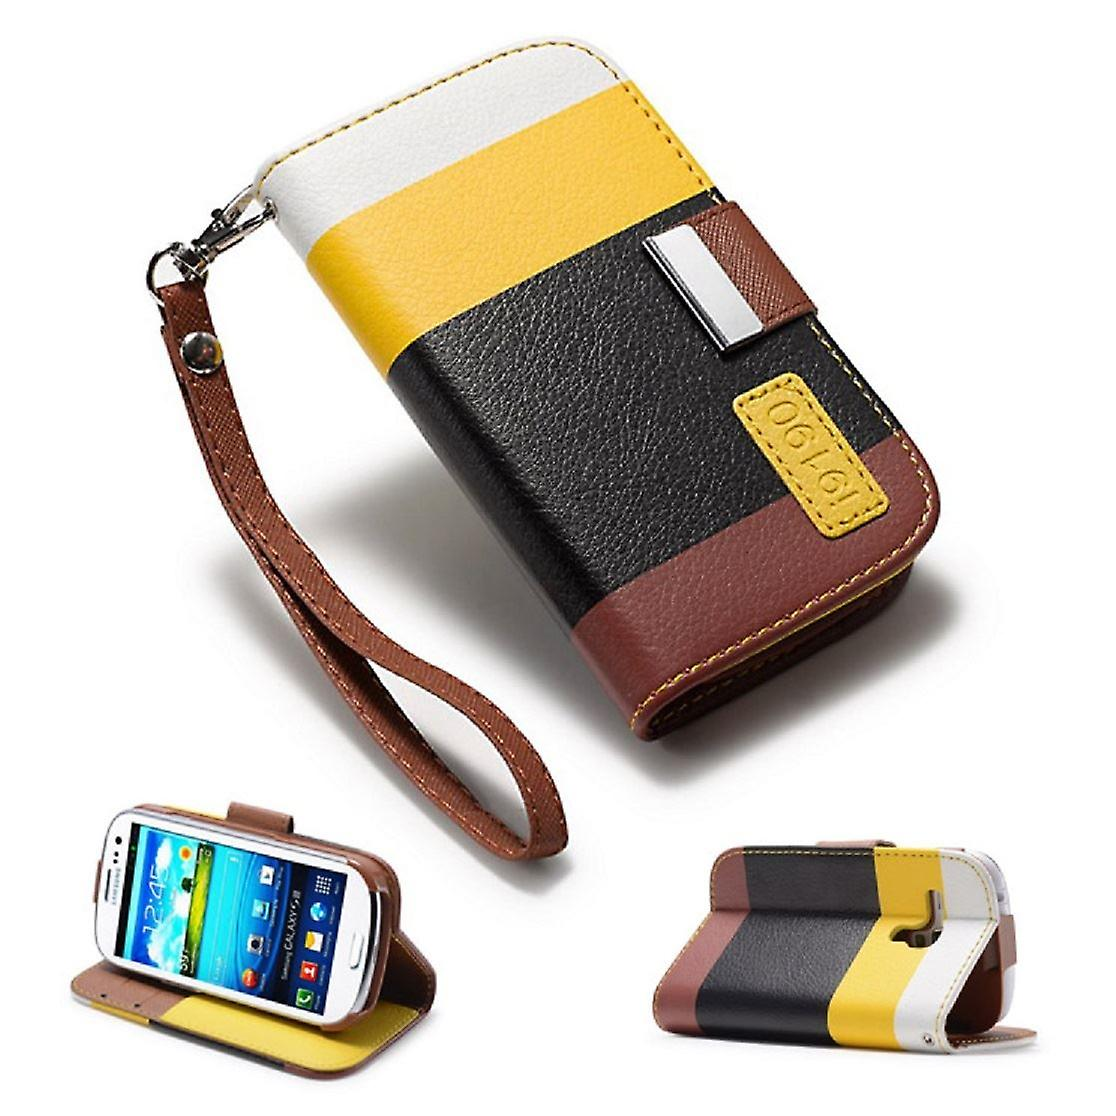 Multiple Stripe wallet case + stylus for Samsung Galaxy S4 Mini (GT-i9190) - Yellow